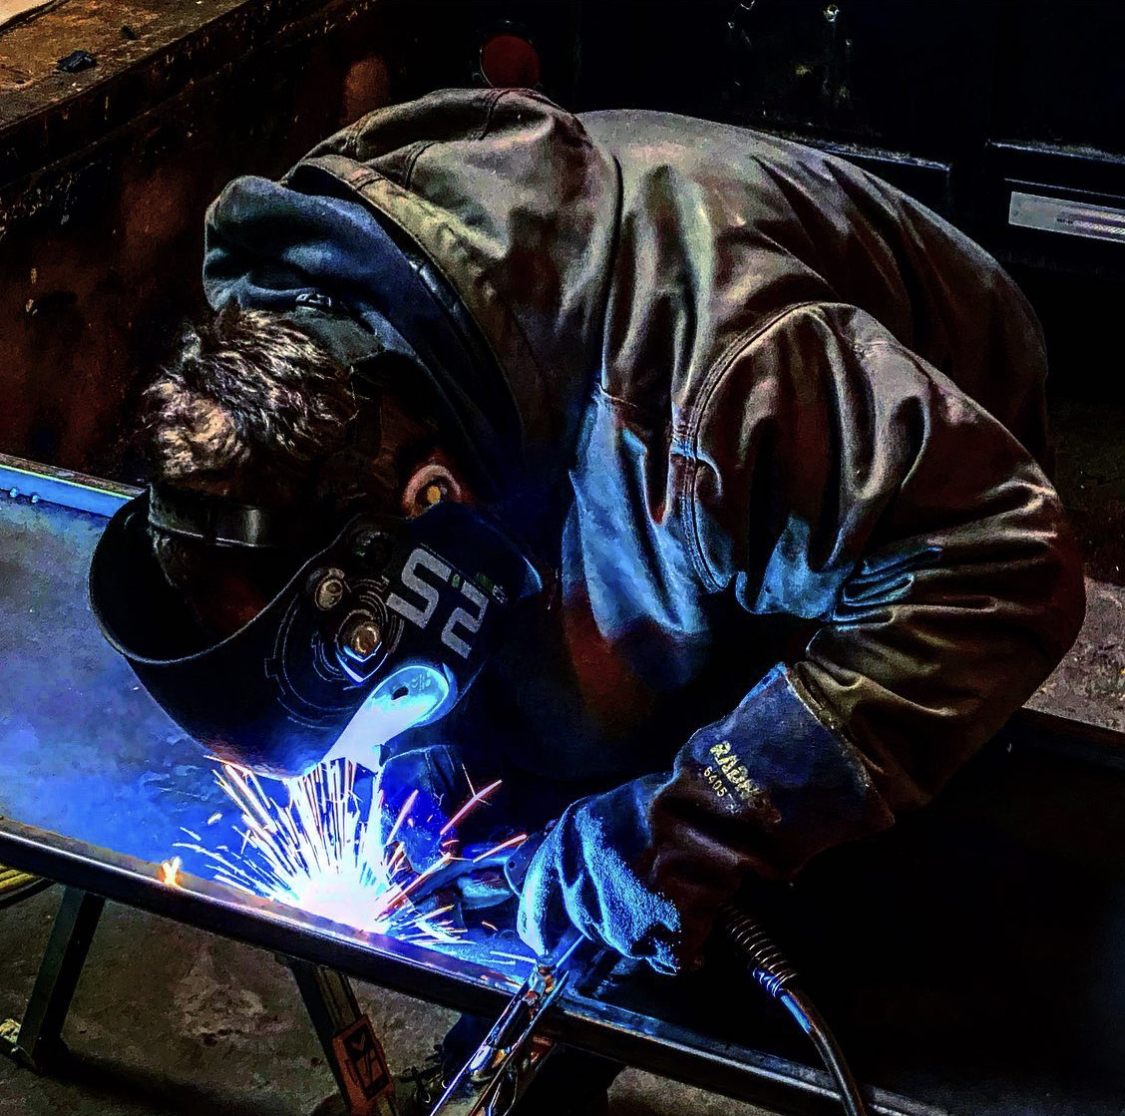 A man welding metal, with sparks flying from his work station